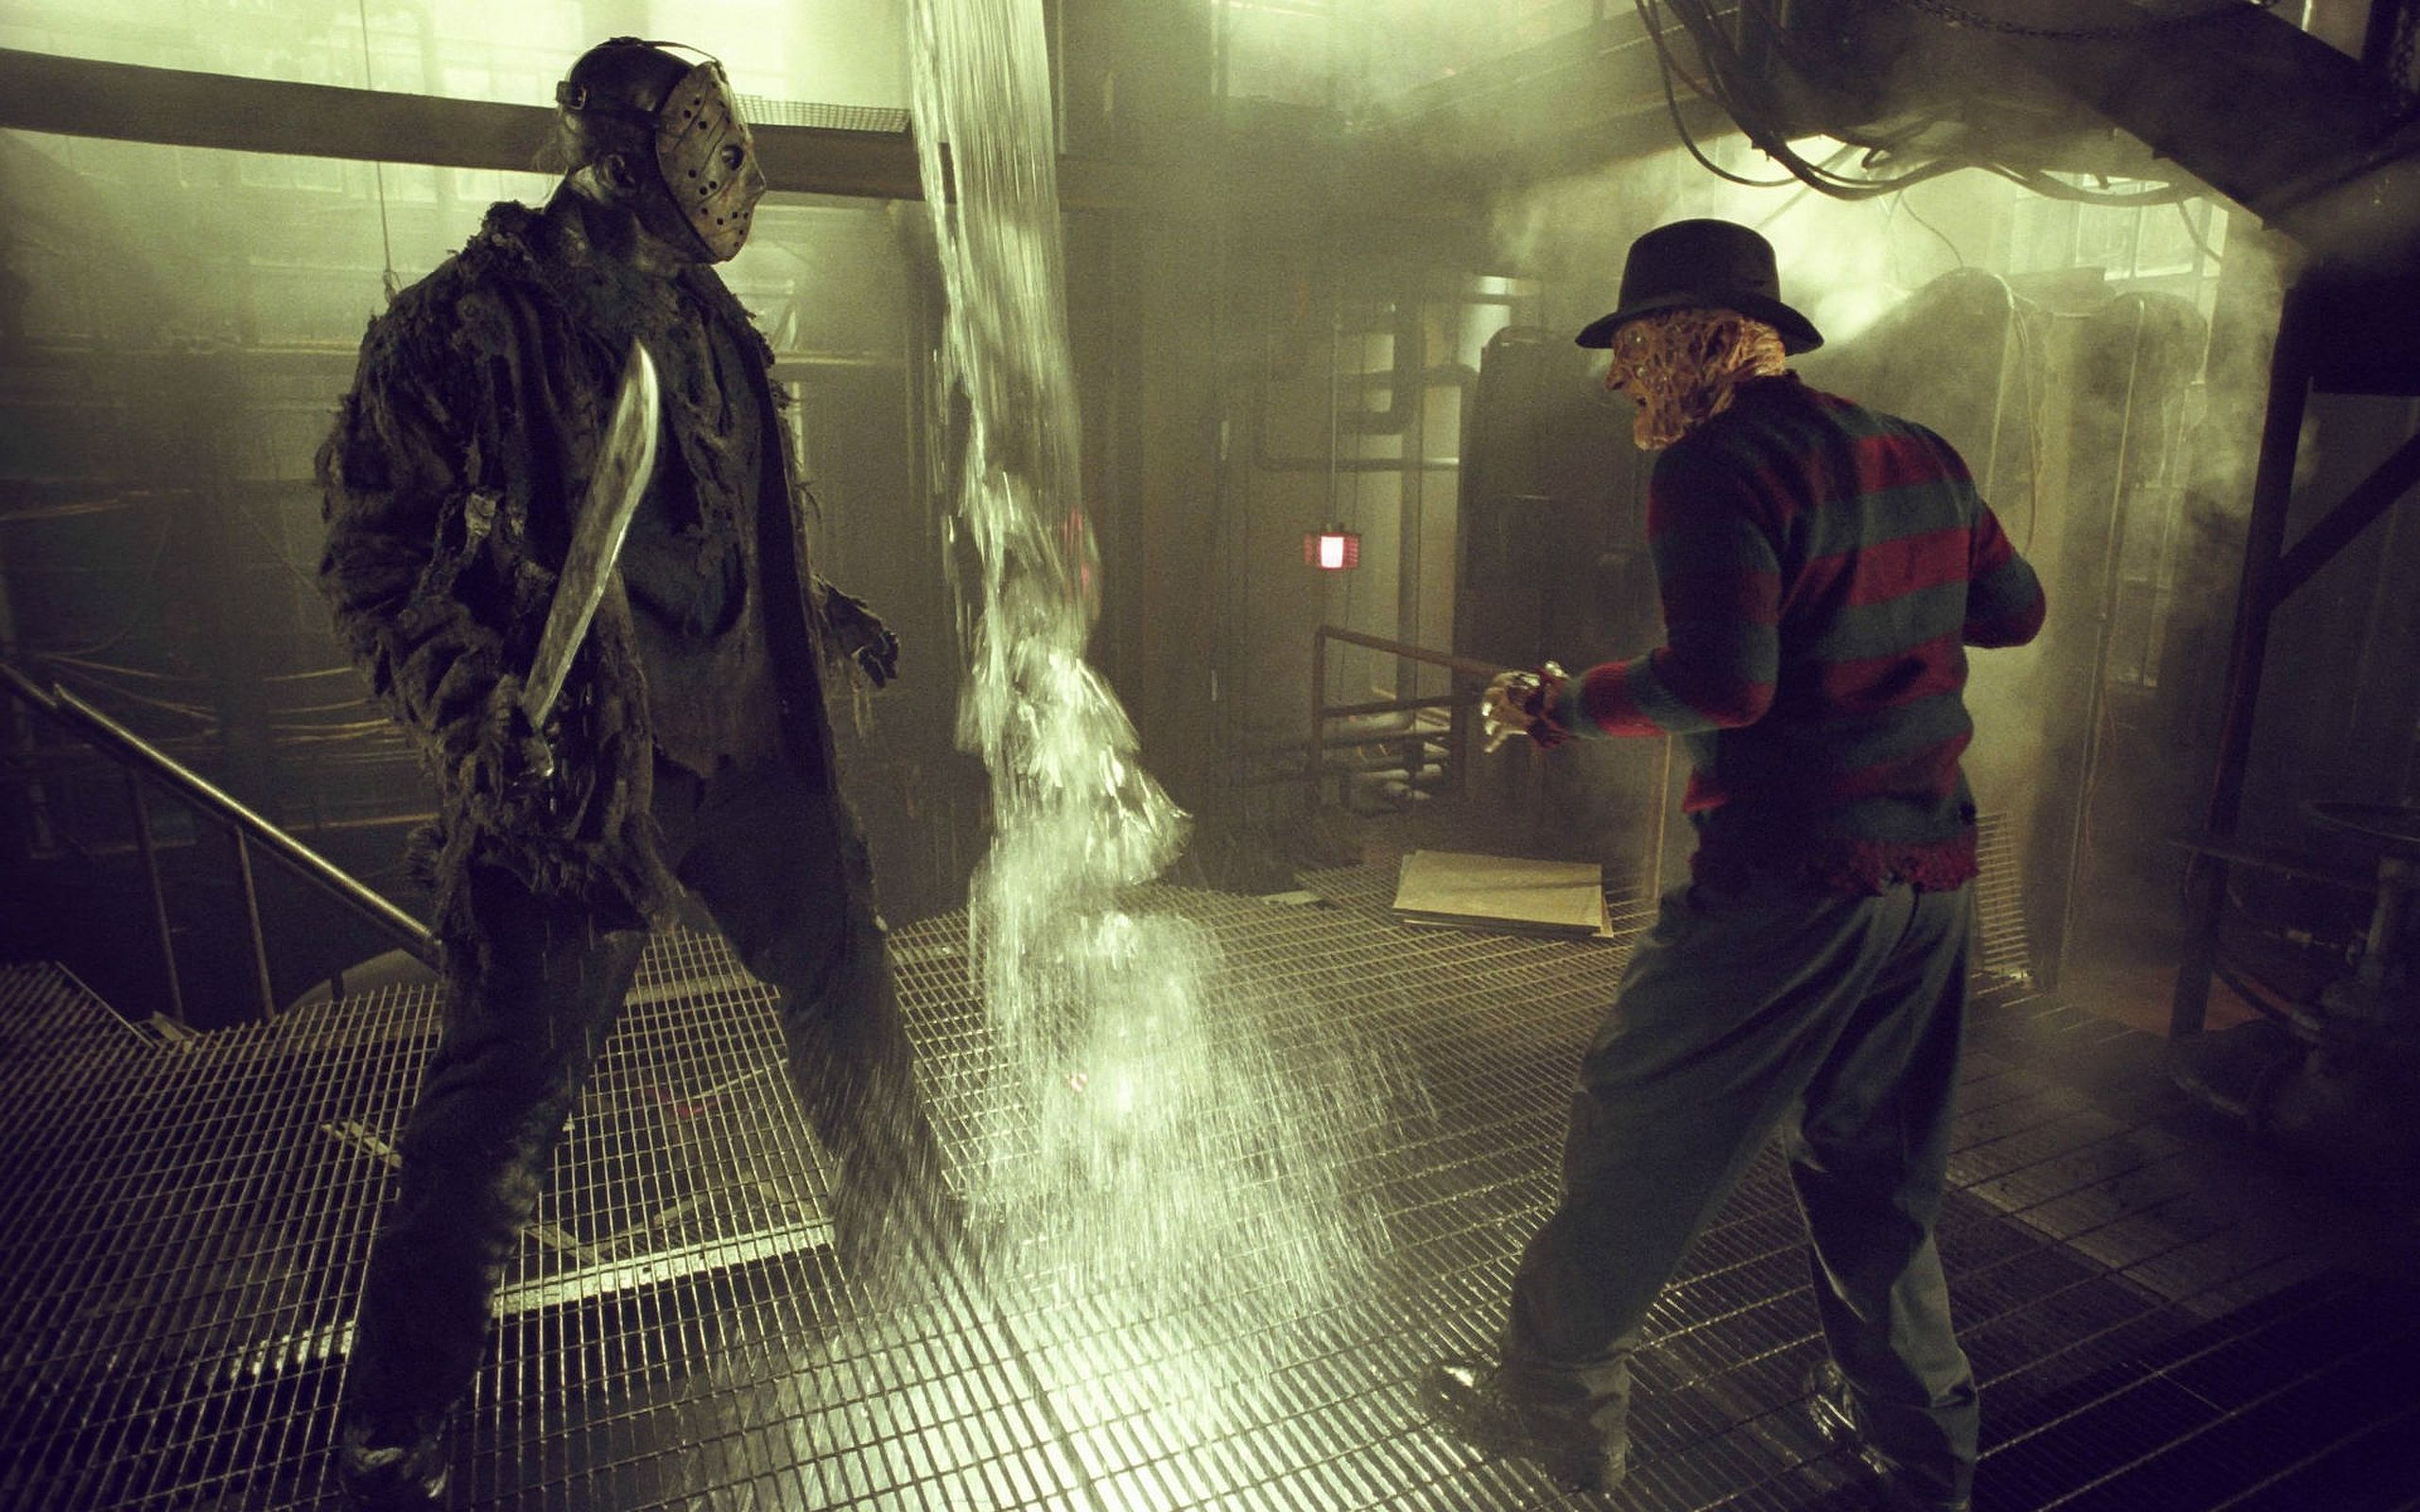 Jason Voorhees (Ken Kirzinger) and Freddy Krueger (Robert Englund) face off in Freddy vs. Jason (2003)